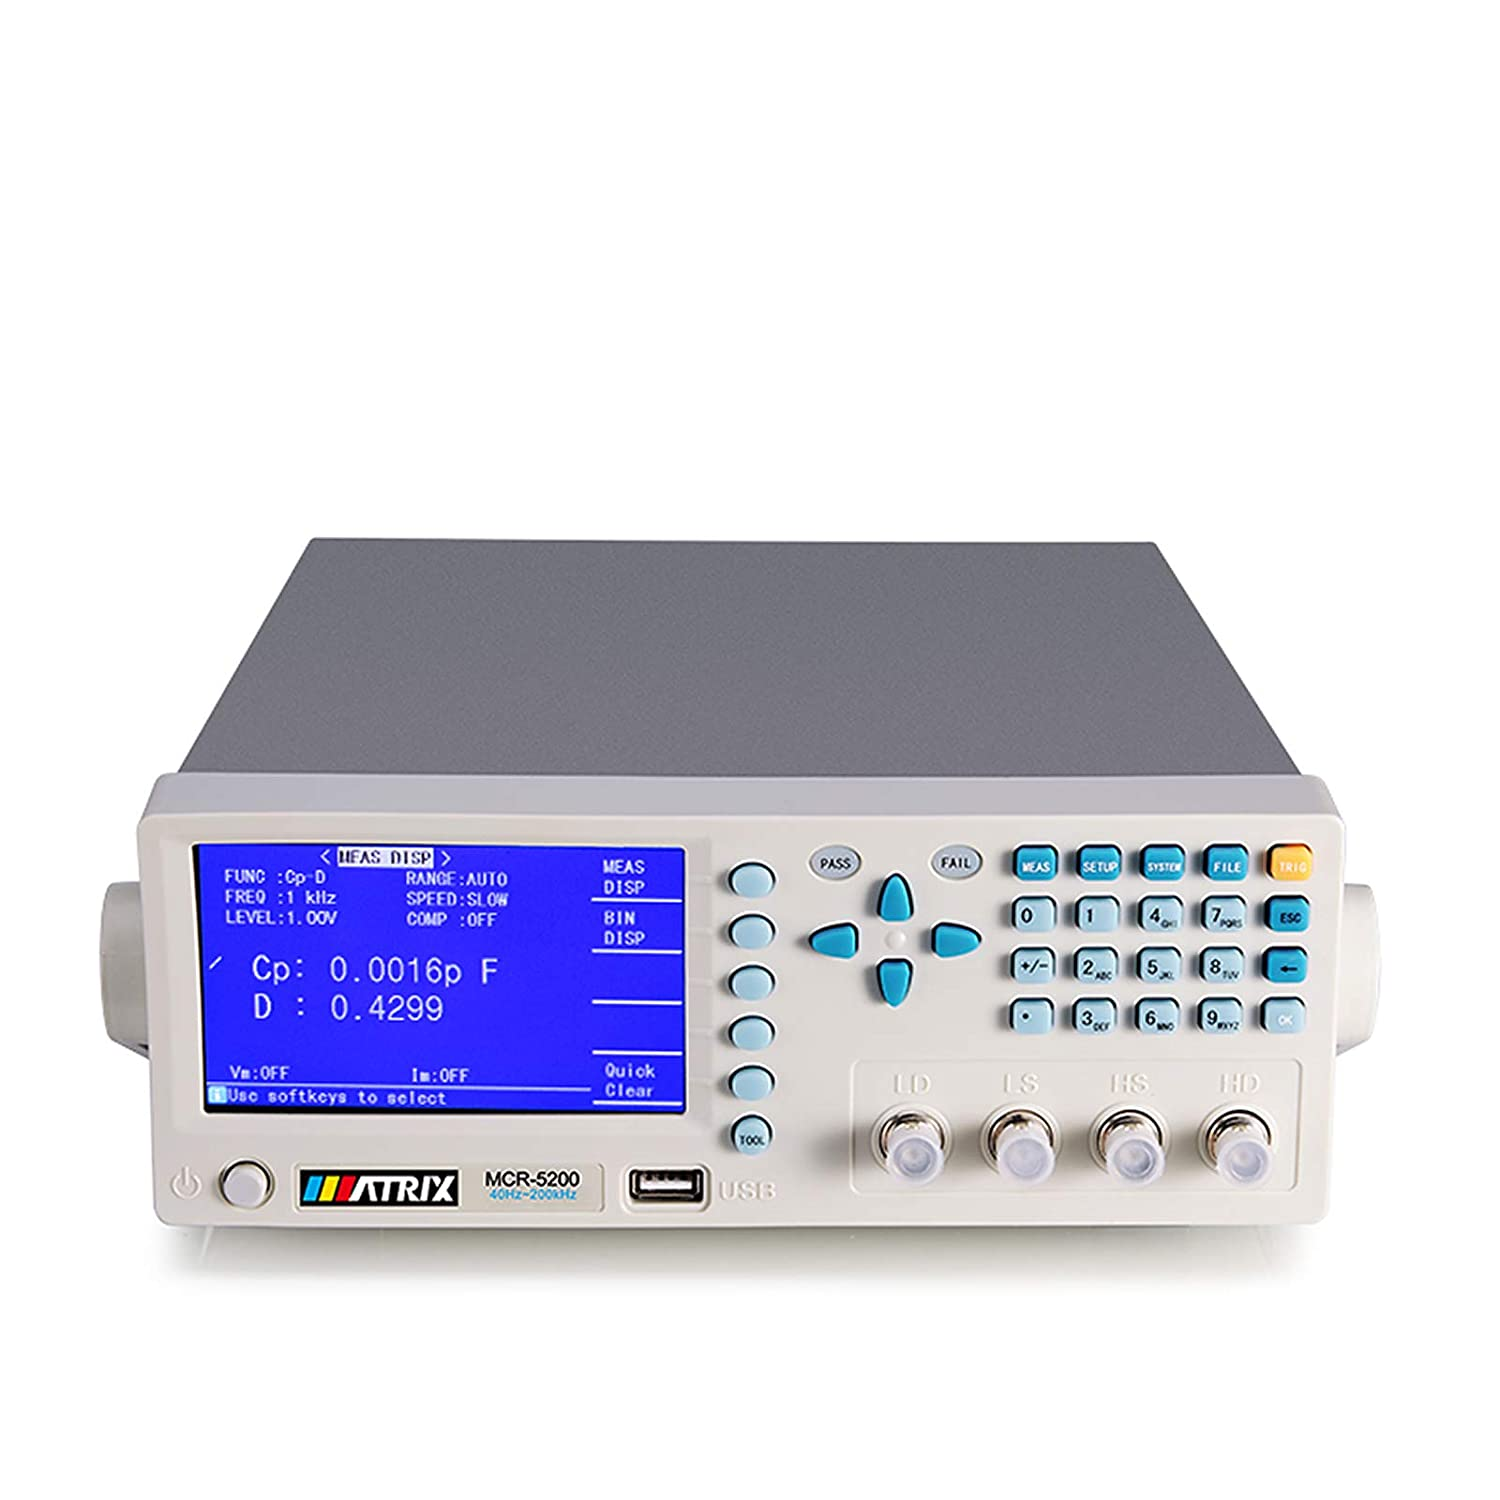 Digital LCR Meter Benchtop Tester for Capacitance Resistance Inductance Measuring 40Hz-200kHz (MCR5200)